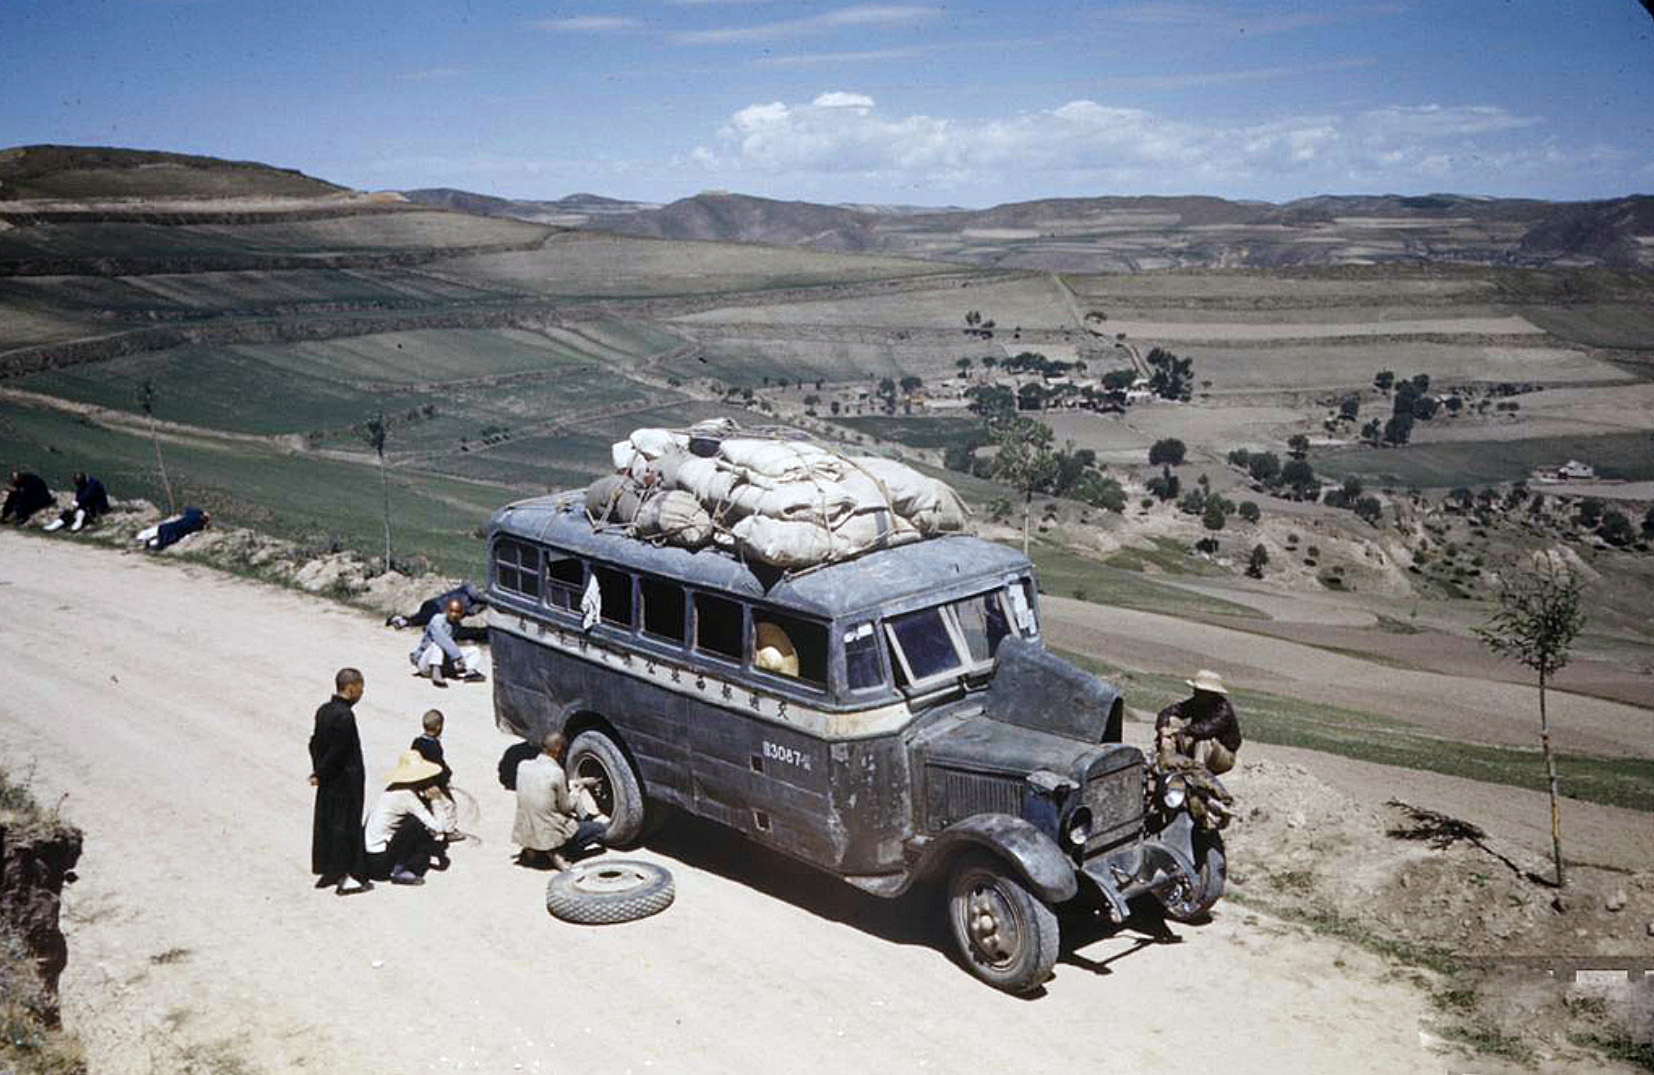 1938 Bus in Kansu China by Carl Mydans2